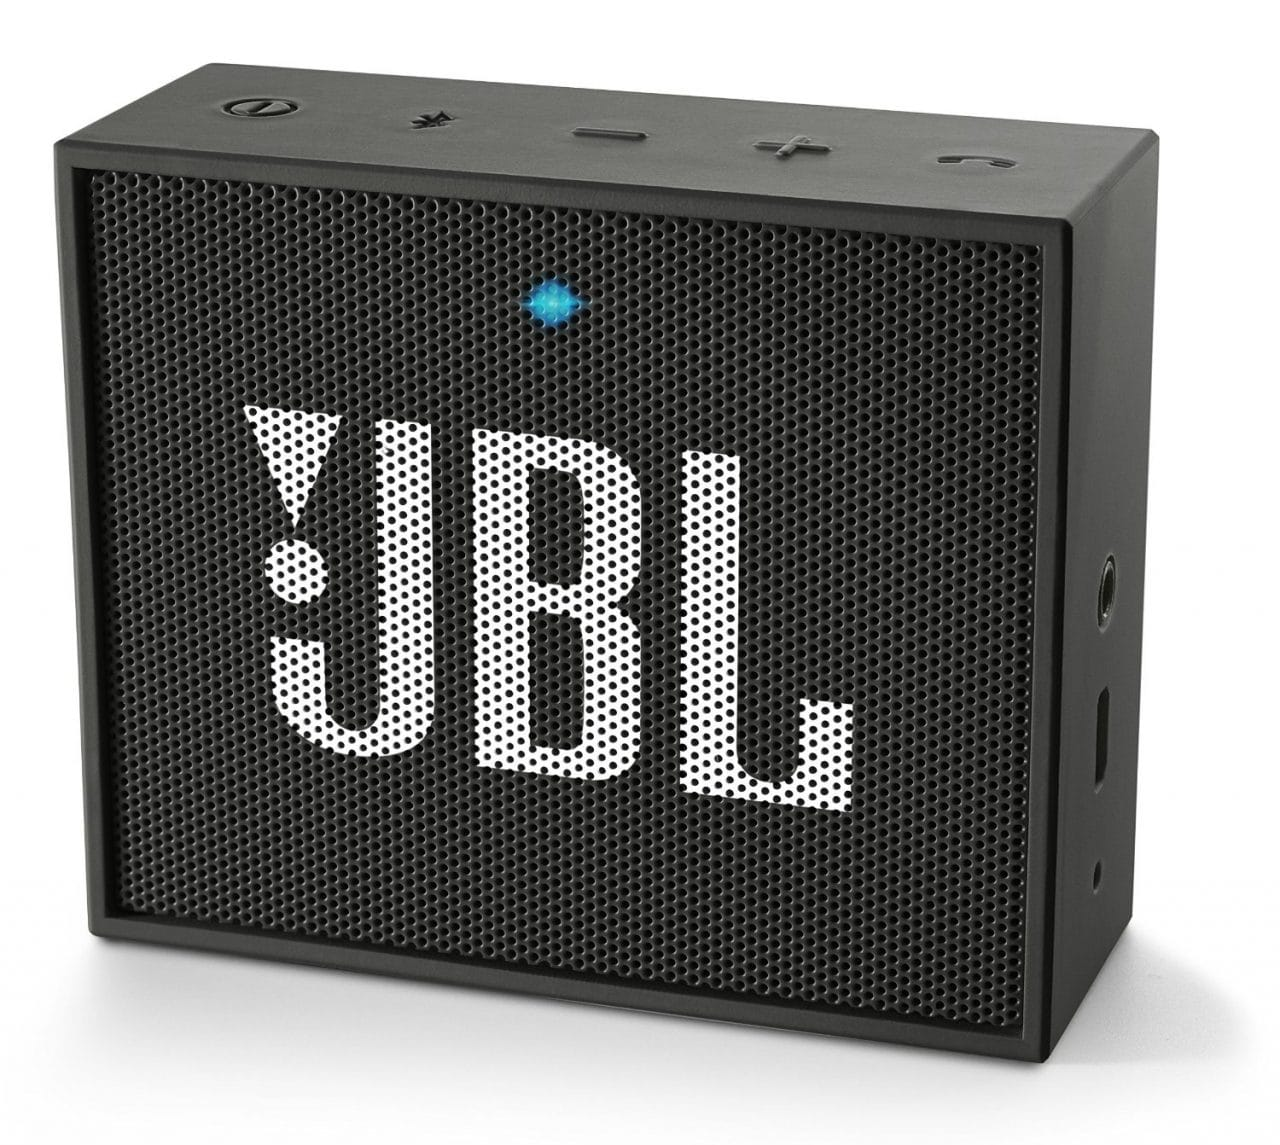 Casse Bluetooth più Vendute su Amazon-JBL GO